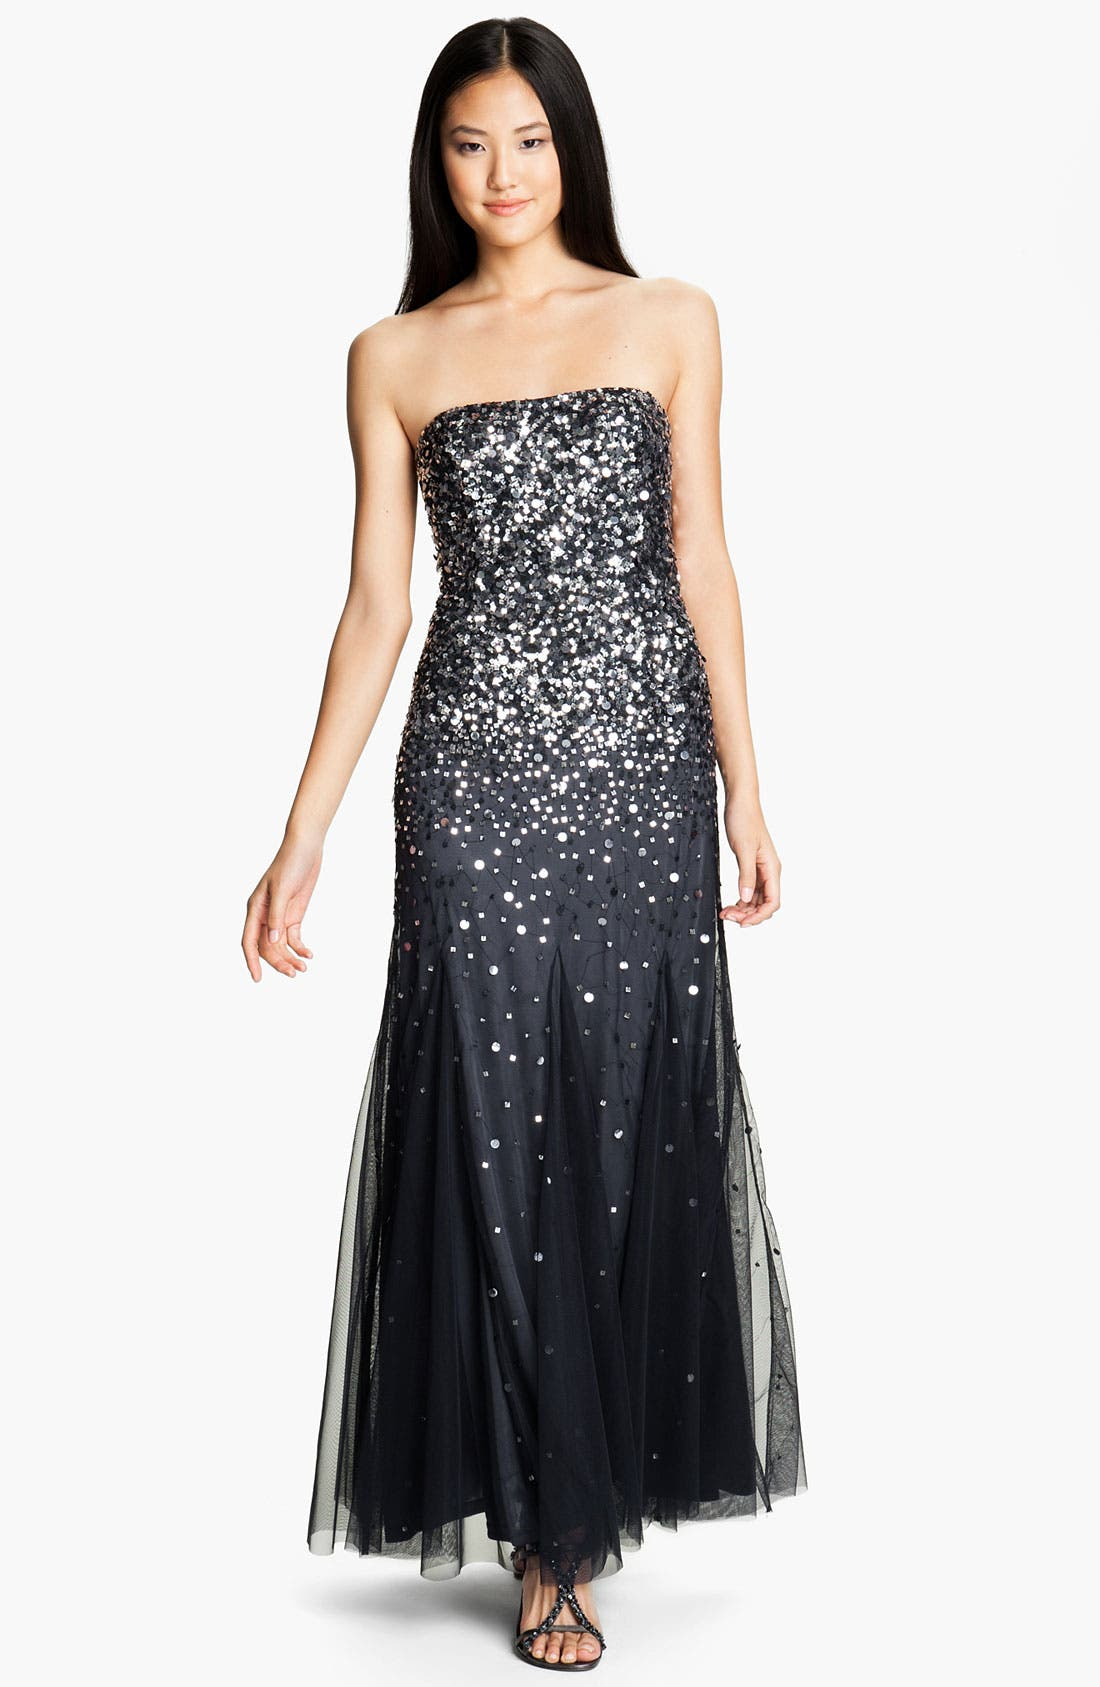 Alternate Image 1 Selected - Adrianna Papell Strapless Sequin Godet Gown